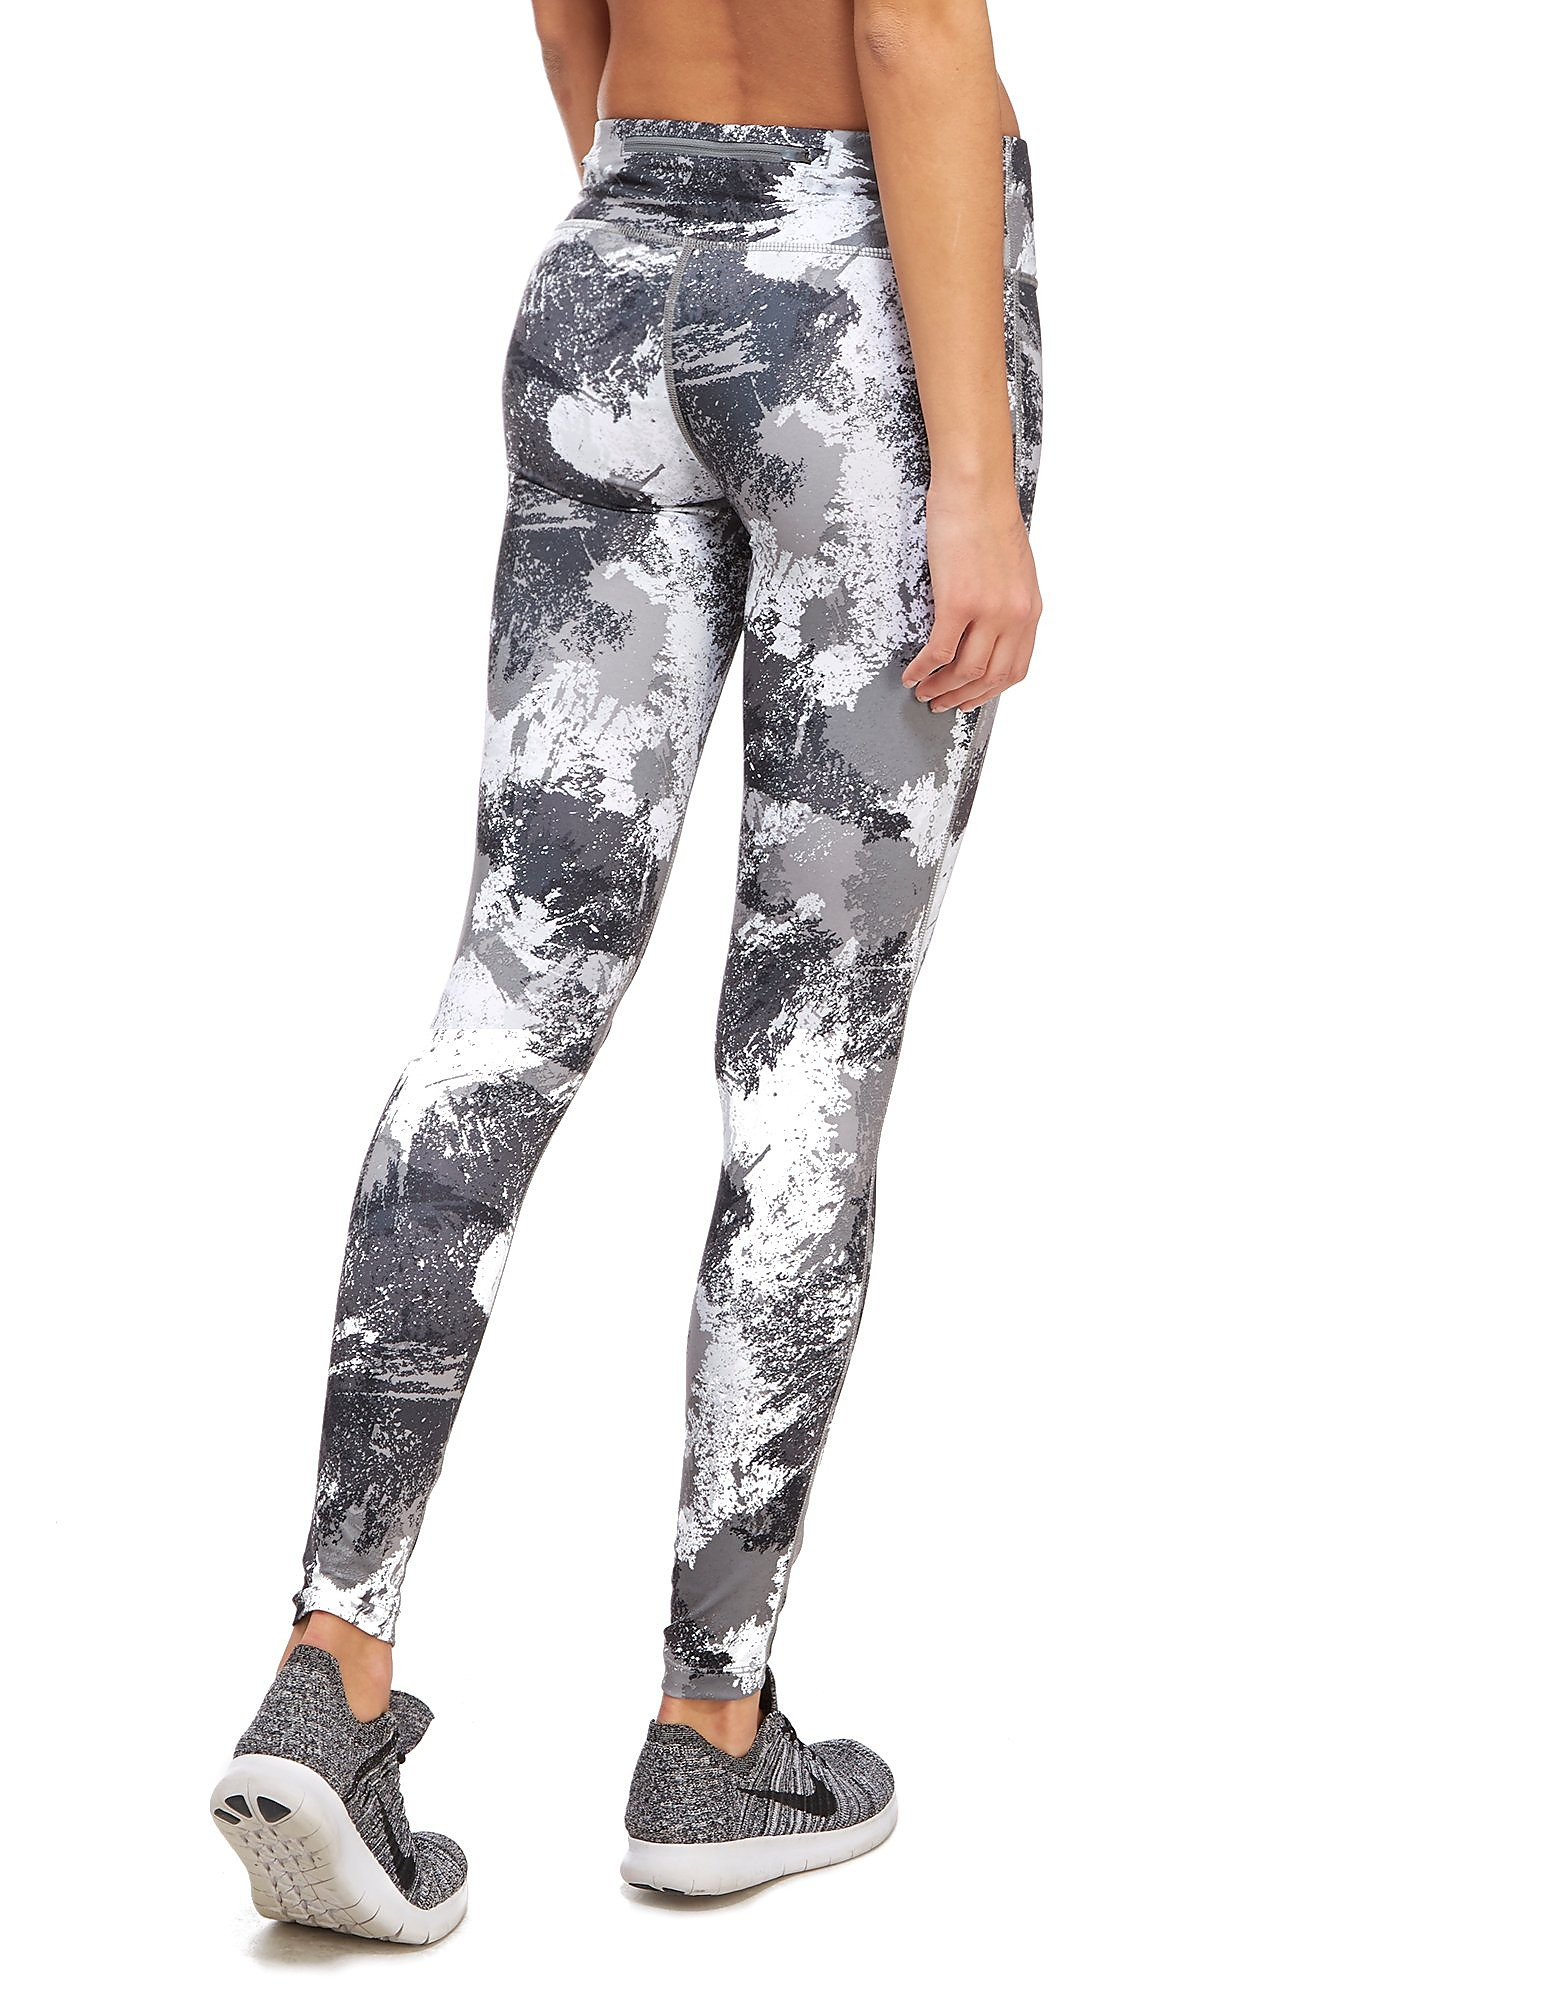 Nike Print Power Essentials Tights